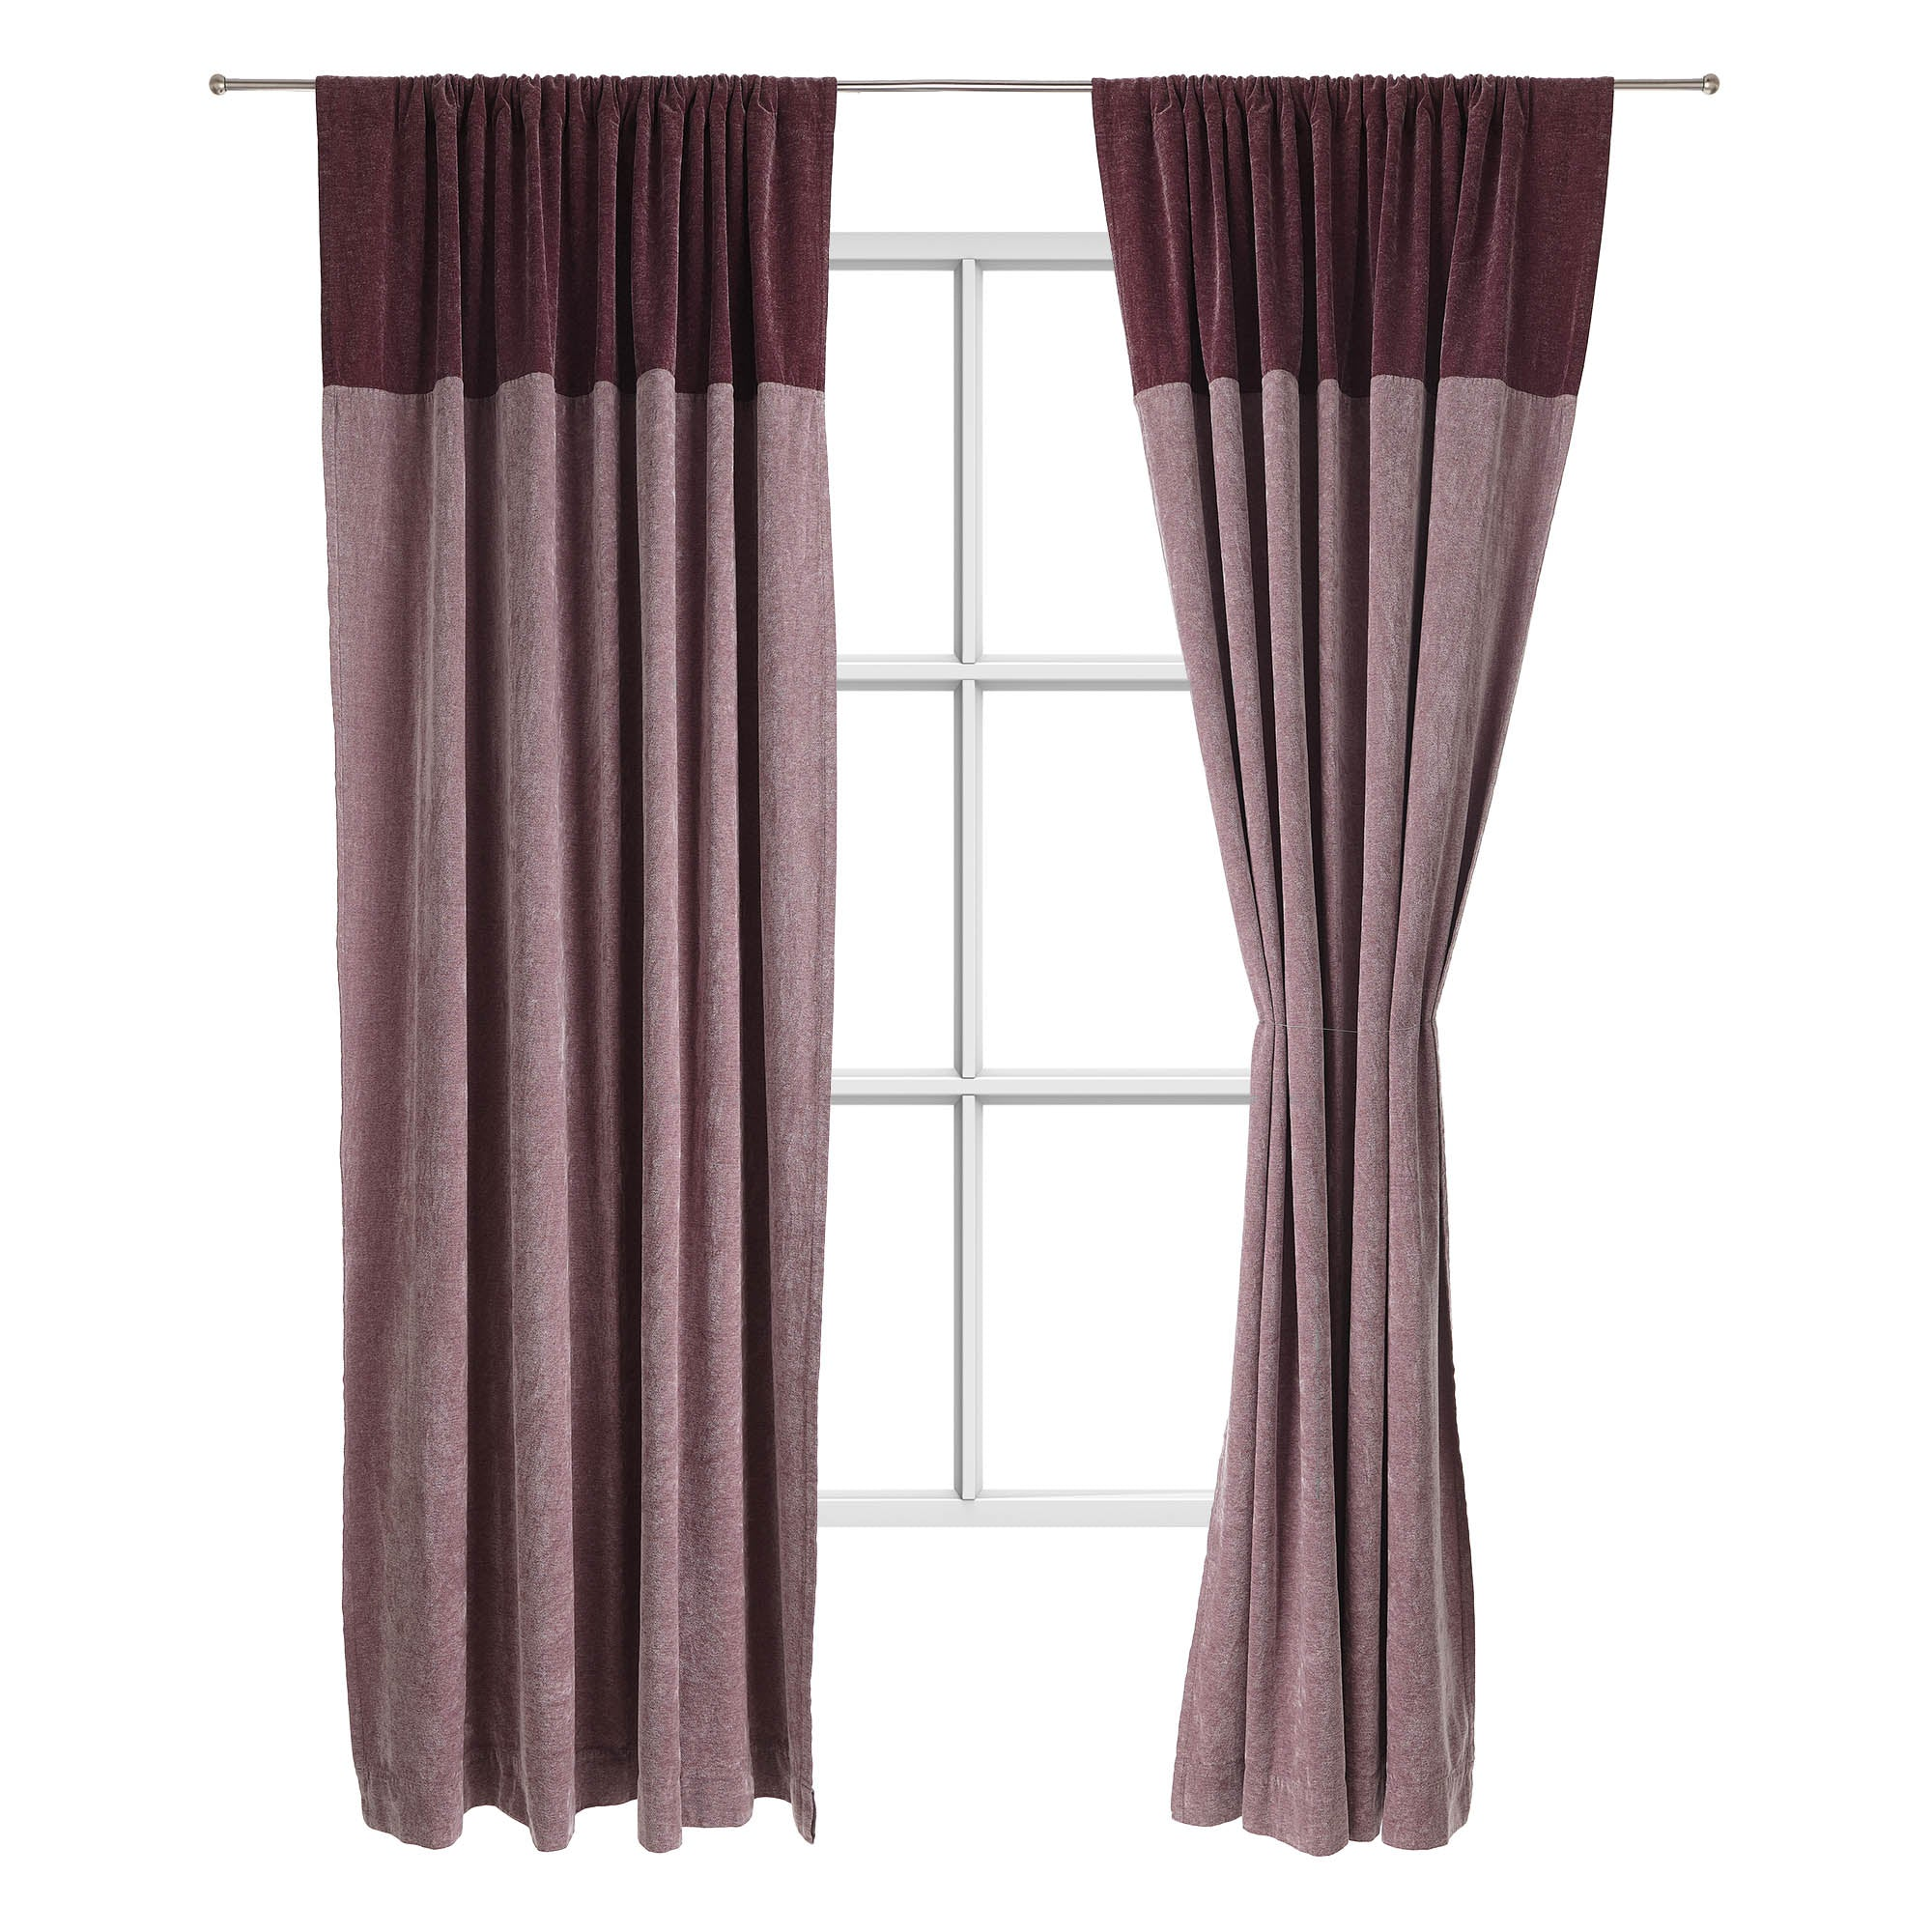 Calcada curtain bordeaux red & white, 60% cotton & 40% acrylic